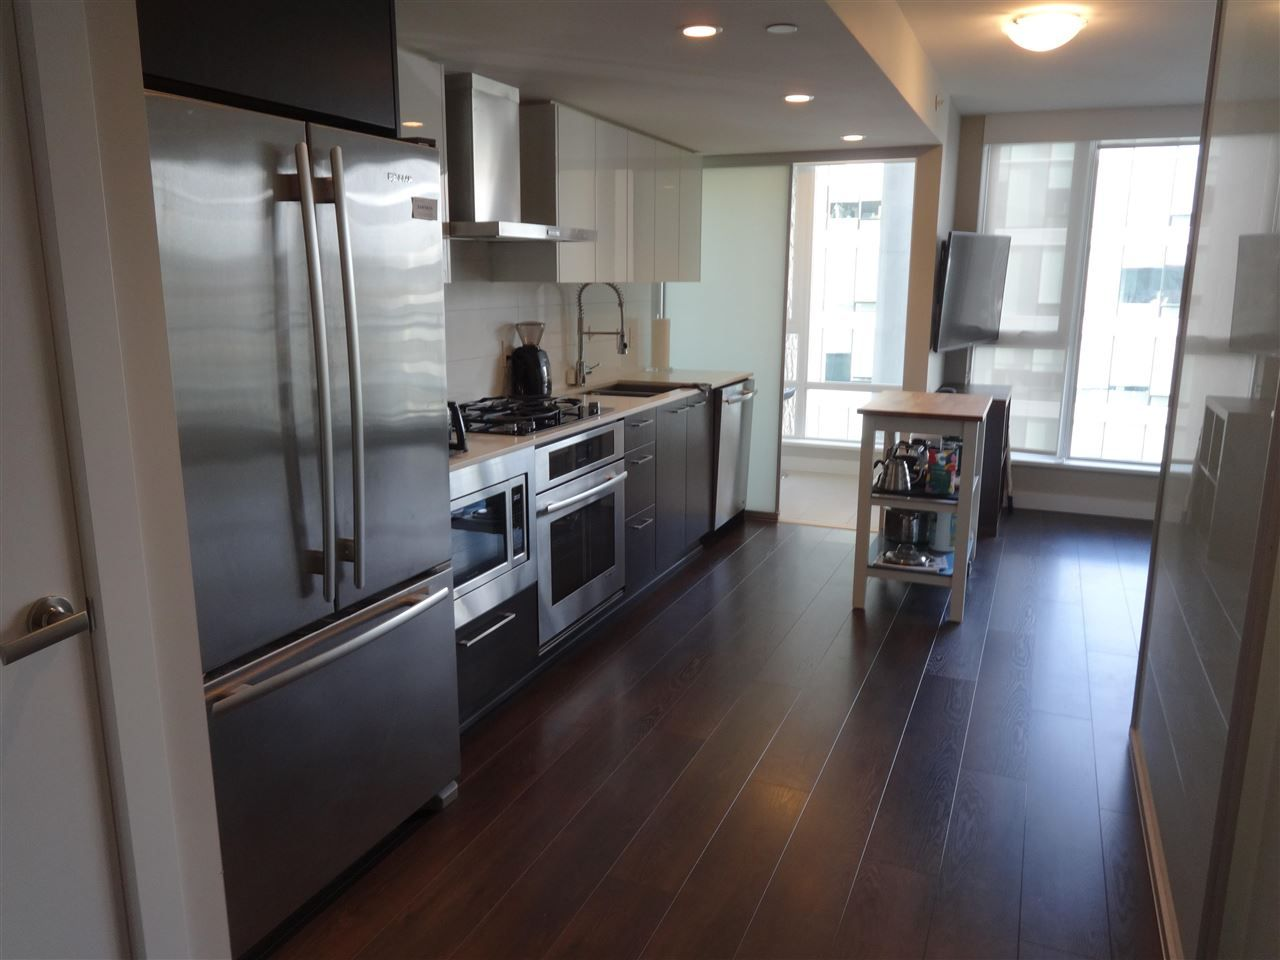 """Main Photo: 1001 1618 QUEBEC Street in Vancouver: Mount Pleasant VE Condo for sale in """"CENTRAL"""" (Vancouver East)  : MLS®# R2586251"""